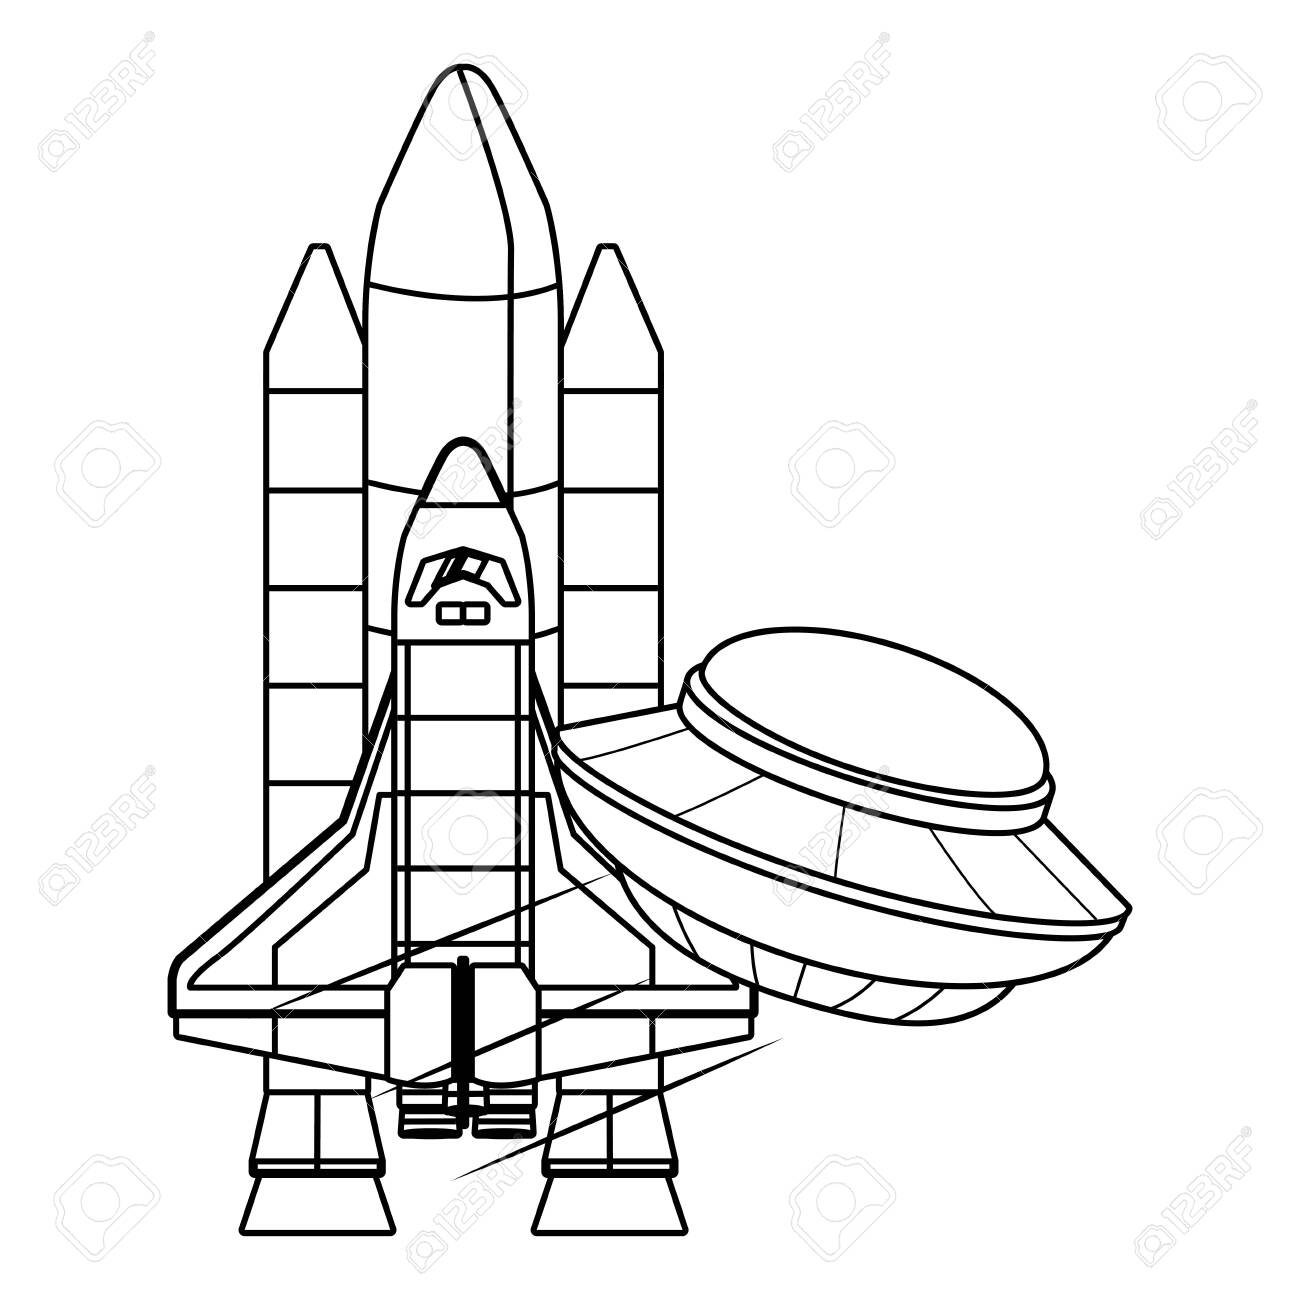 Spaceship Clipart Space Vehicle - Space Shuttle Black And White, HD Png  Download - kindpng